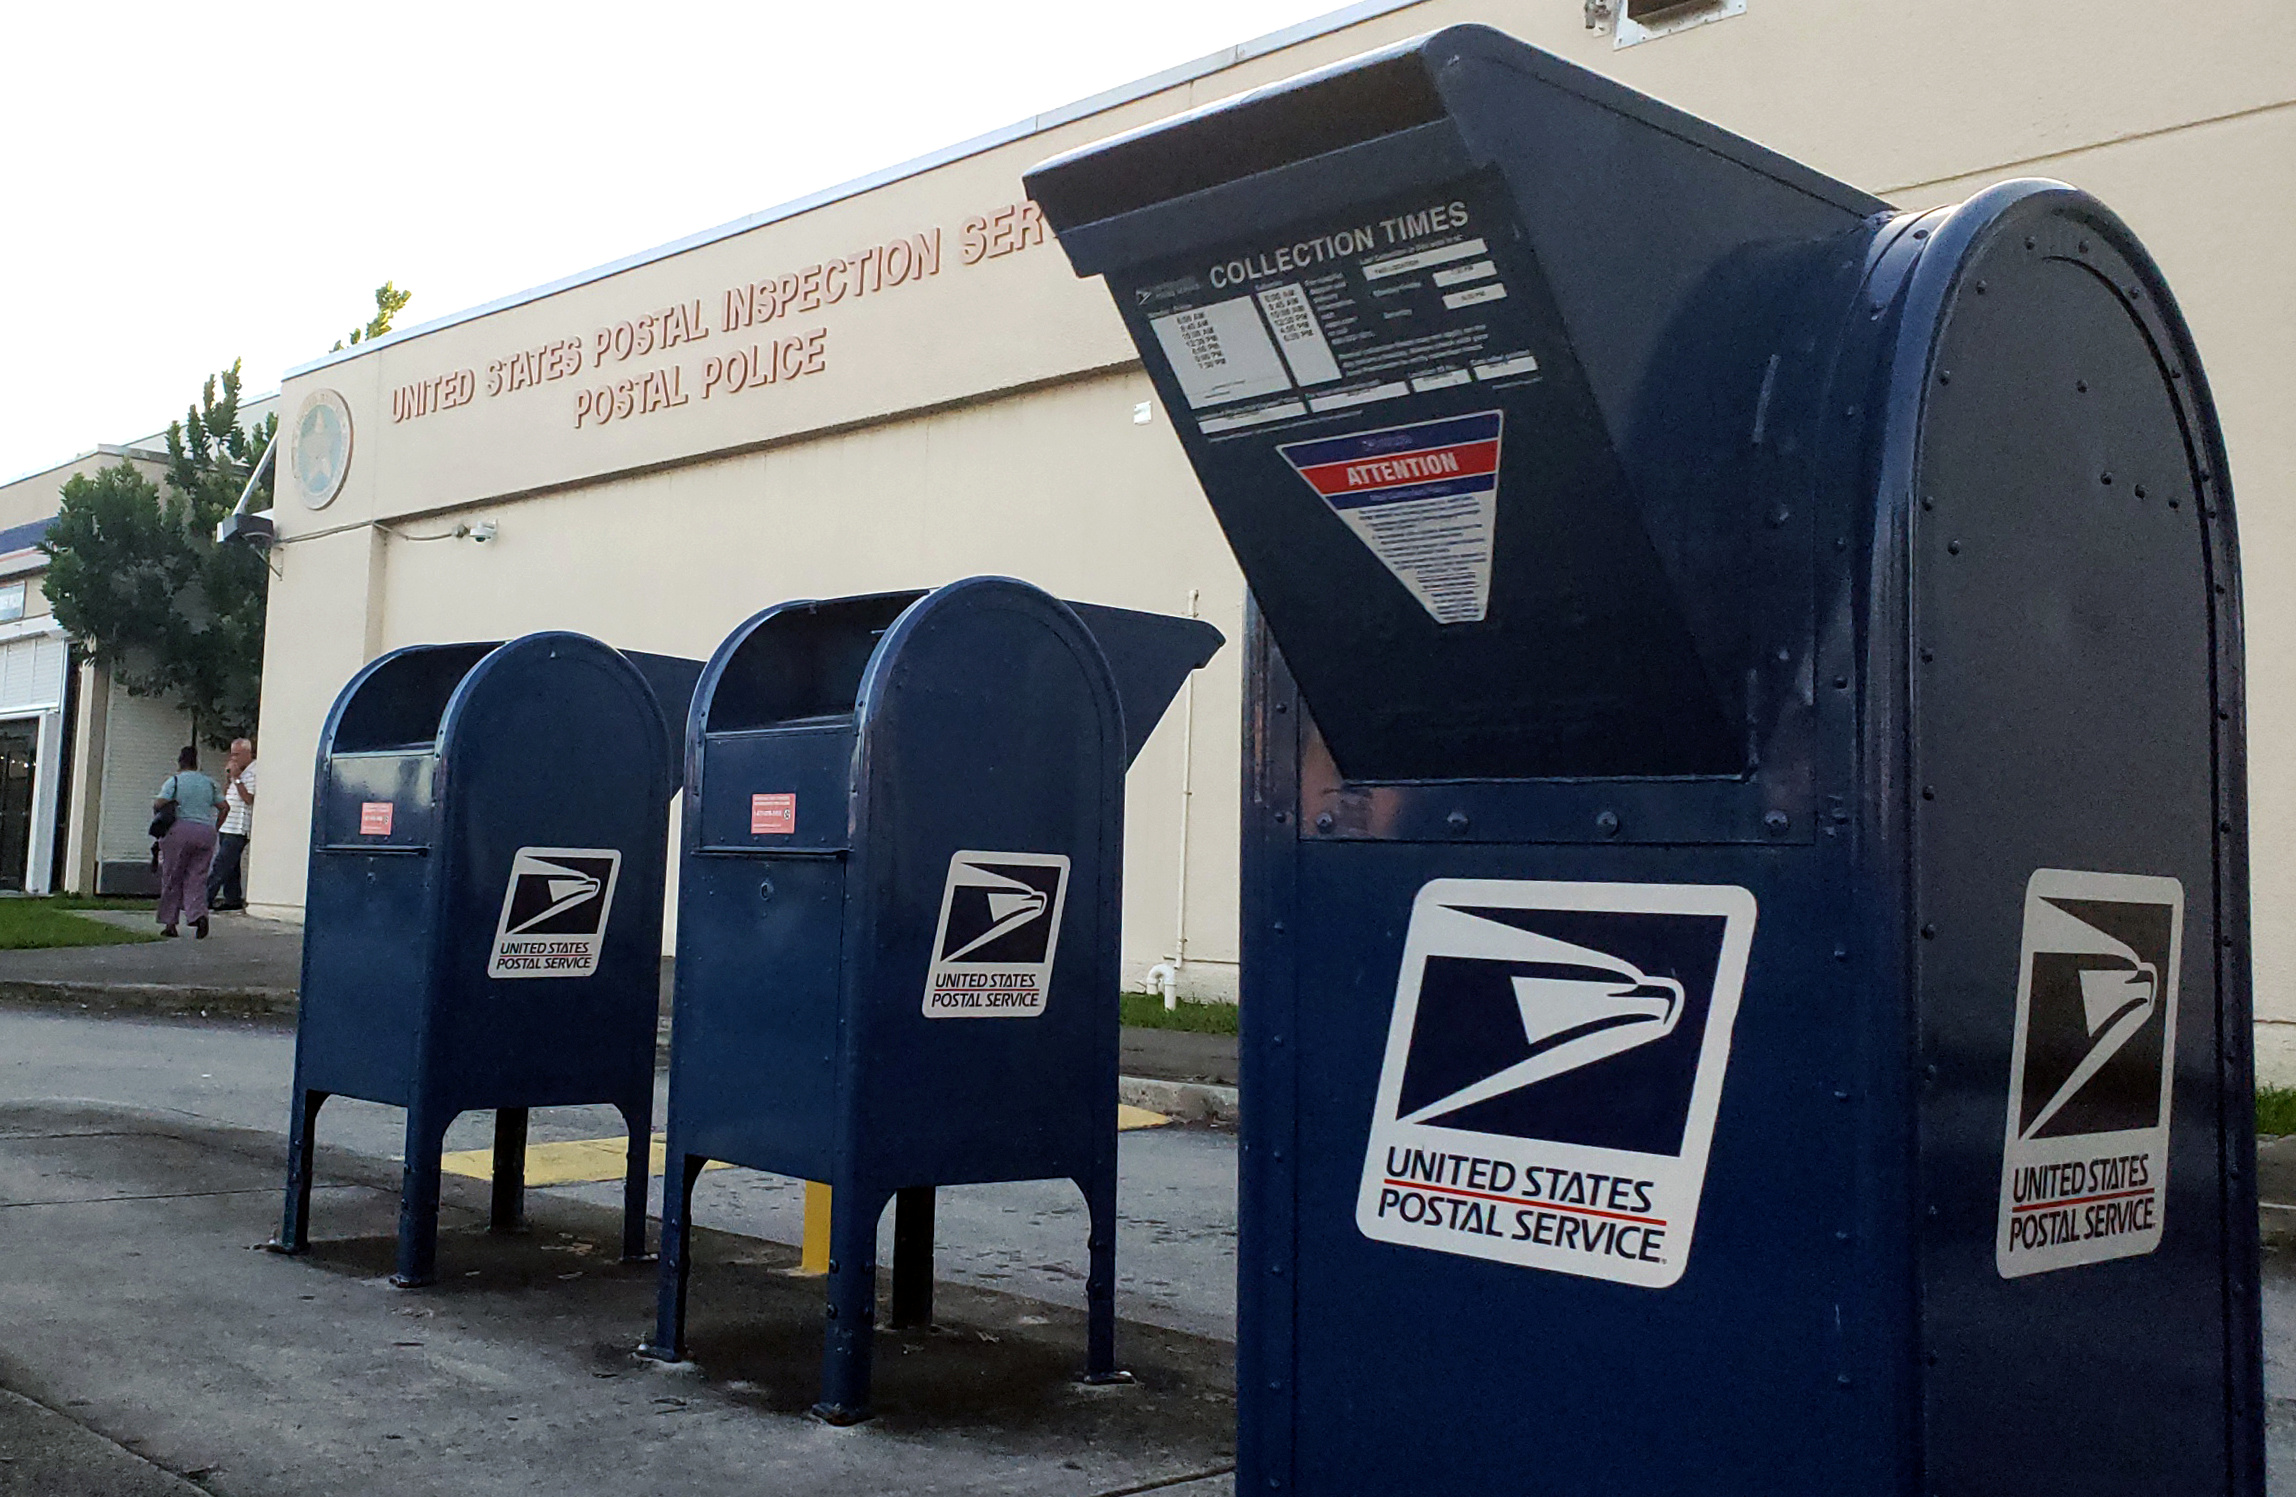 A U.S. Postal Inspection Service facility is pictured near Miami International Airport, in Miami, Florida, U.S., October 25, 2018. REUTERS/Zach Fagenson